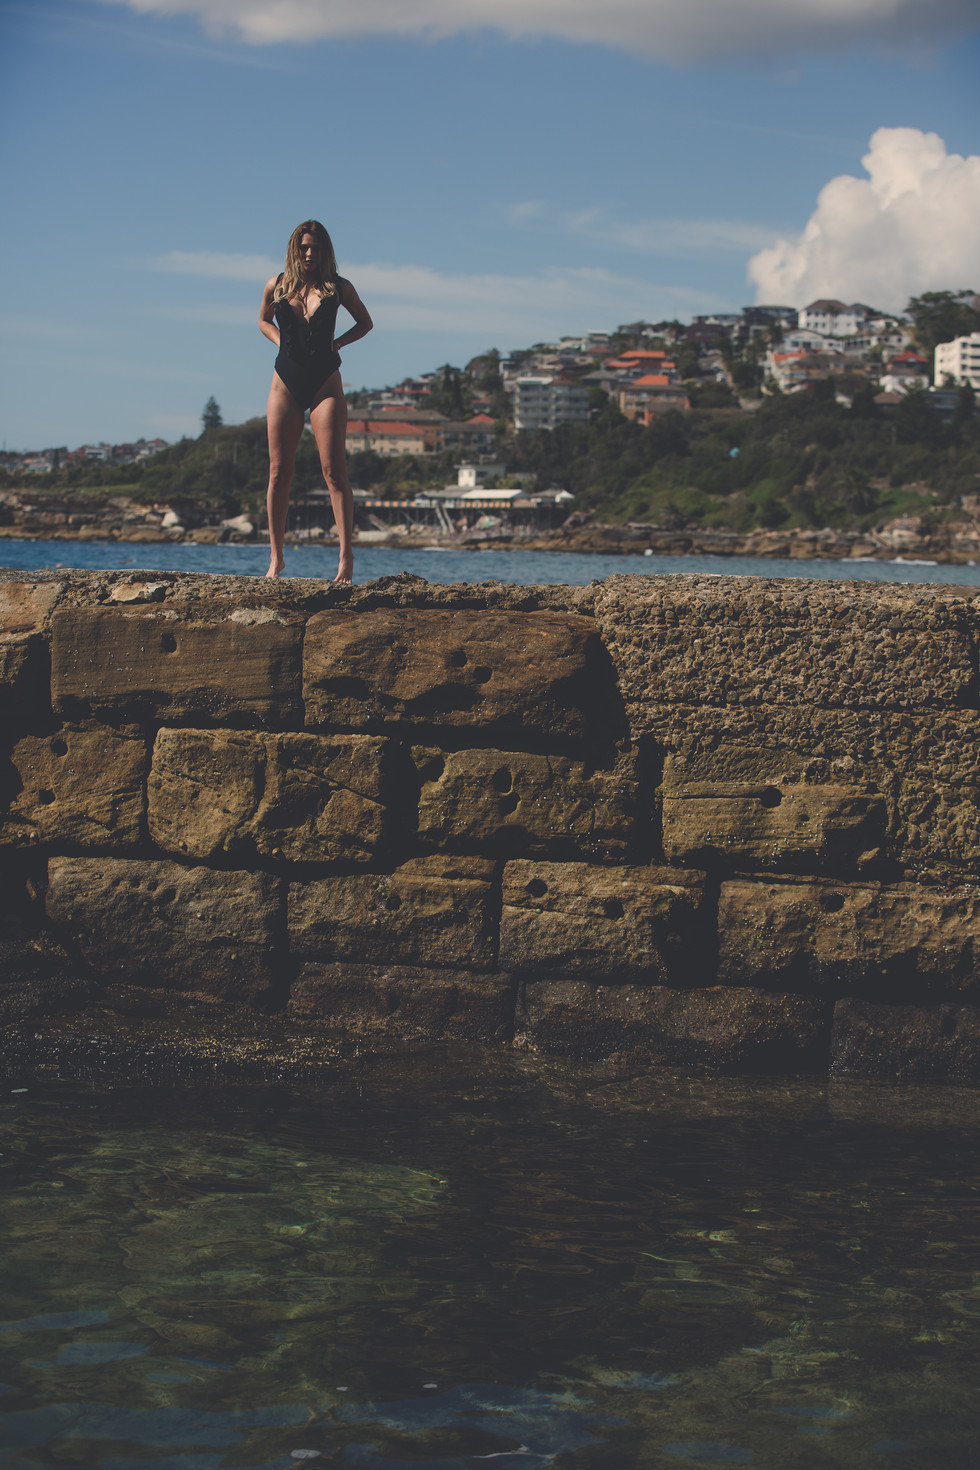 Kristy__by_CoogeePhotography-223499.jpg